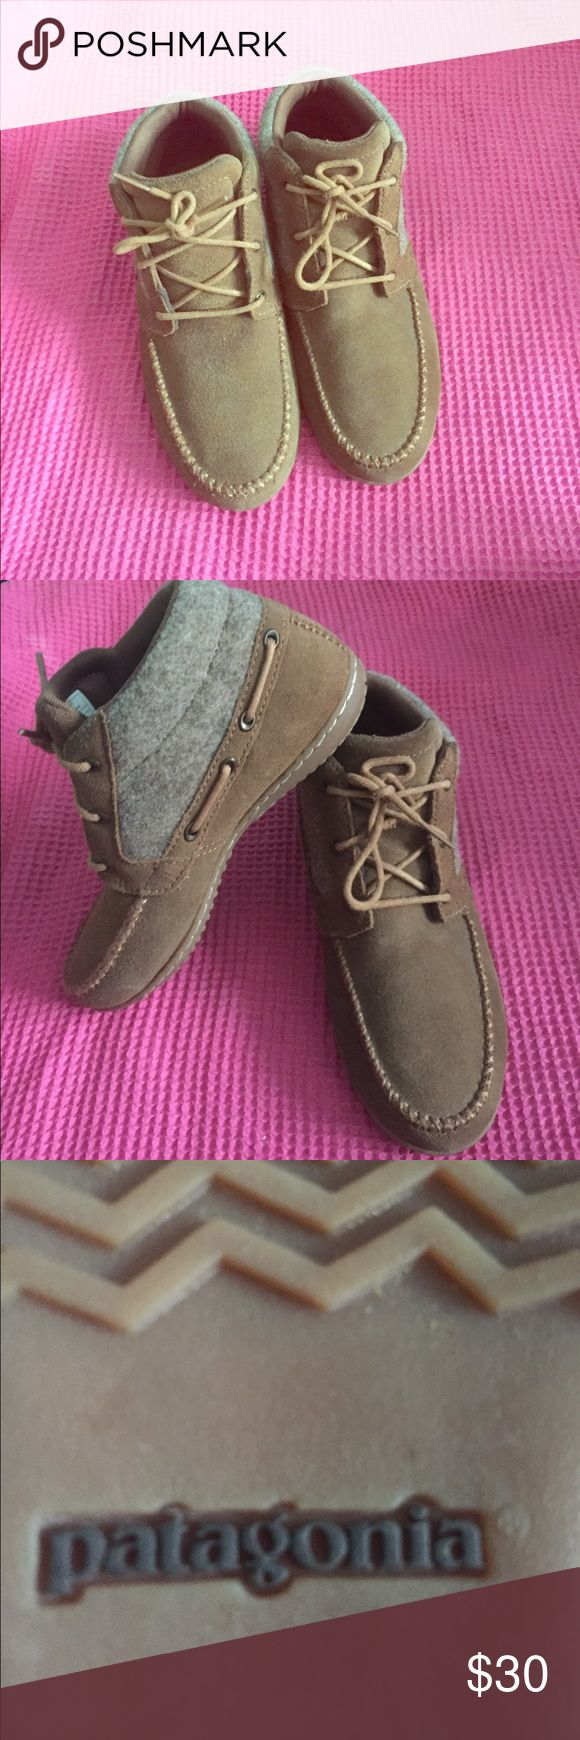 Patagonia chukka boots Gently used Patagonia booties! Brown with brown and grey siding. Suede booties. 6m Patagonia Shoes Ankle Boots & Booties